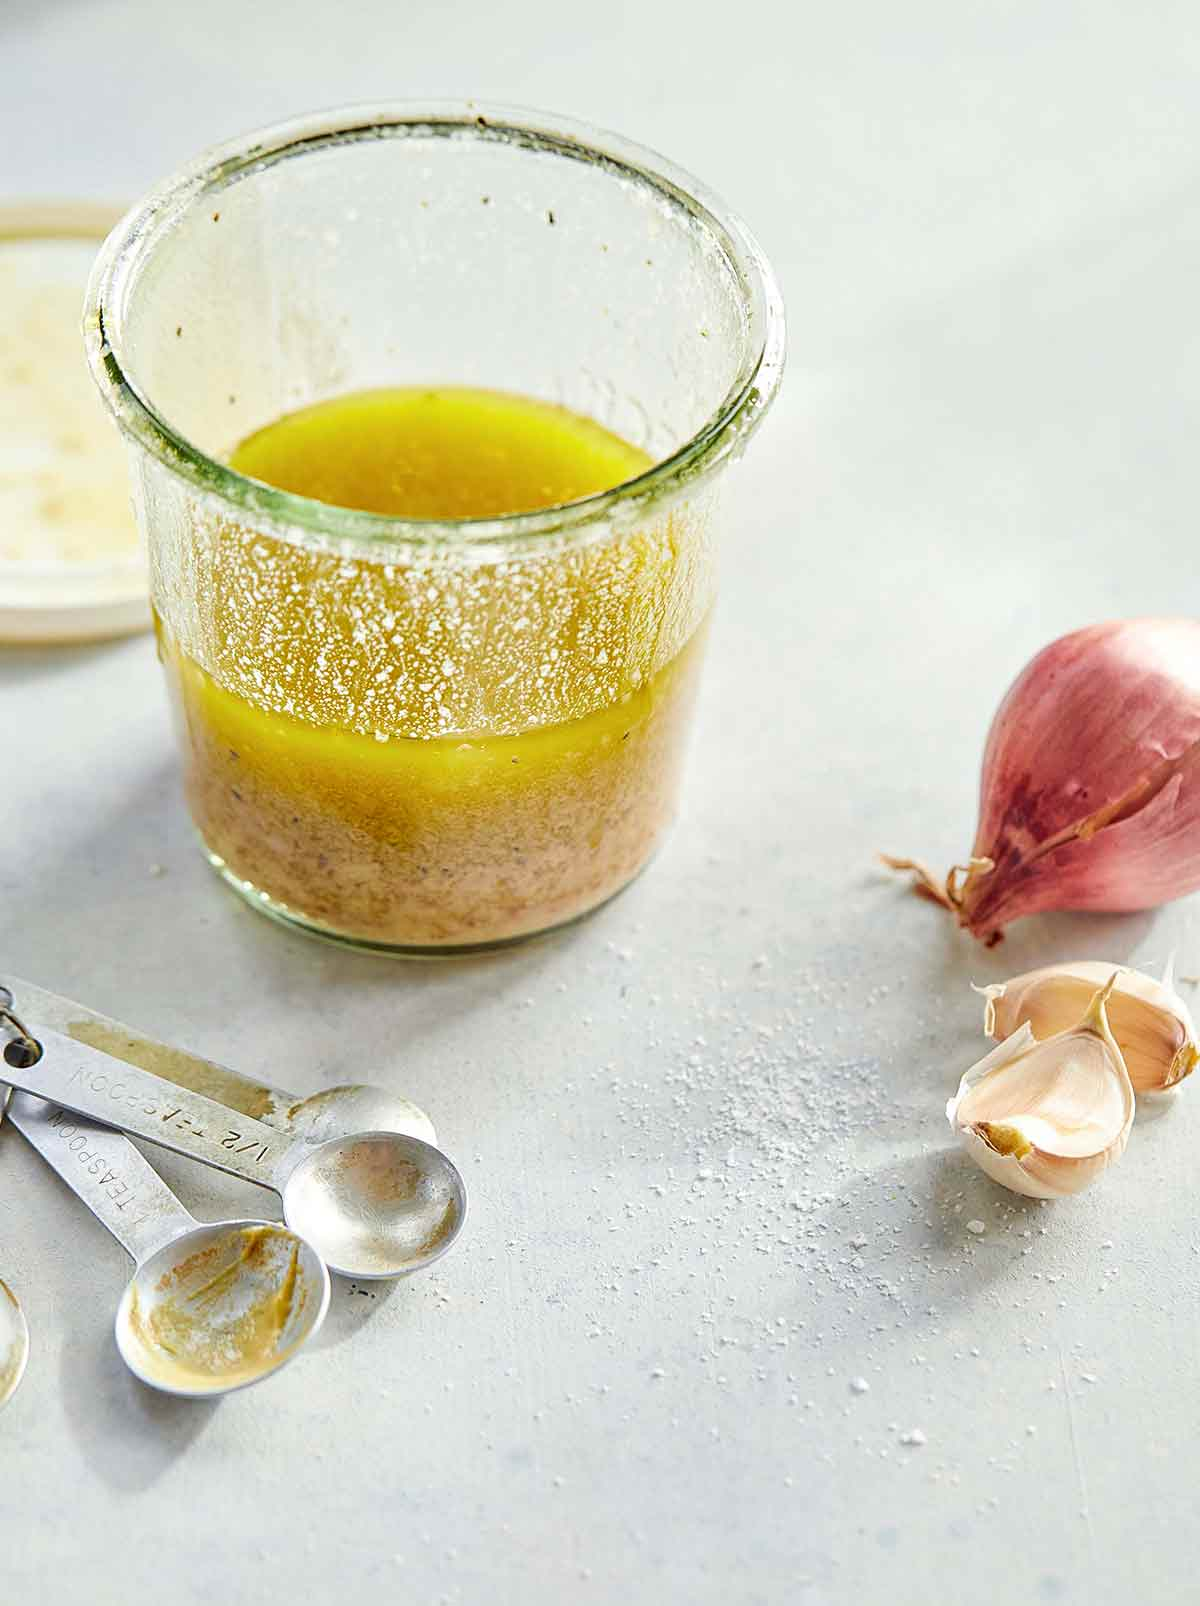 A glass jar half-filled with basic vinaigrette with measuring spoons, a shallot, and two garlic cloves on the side.